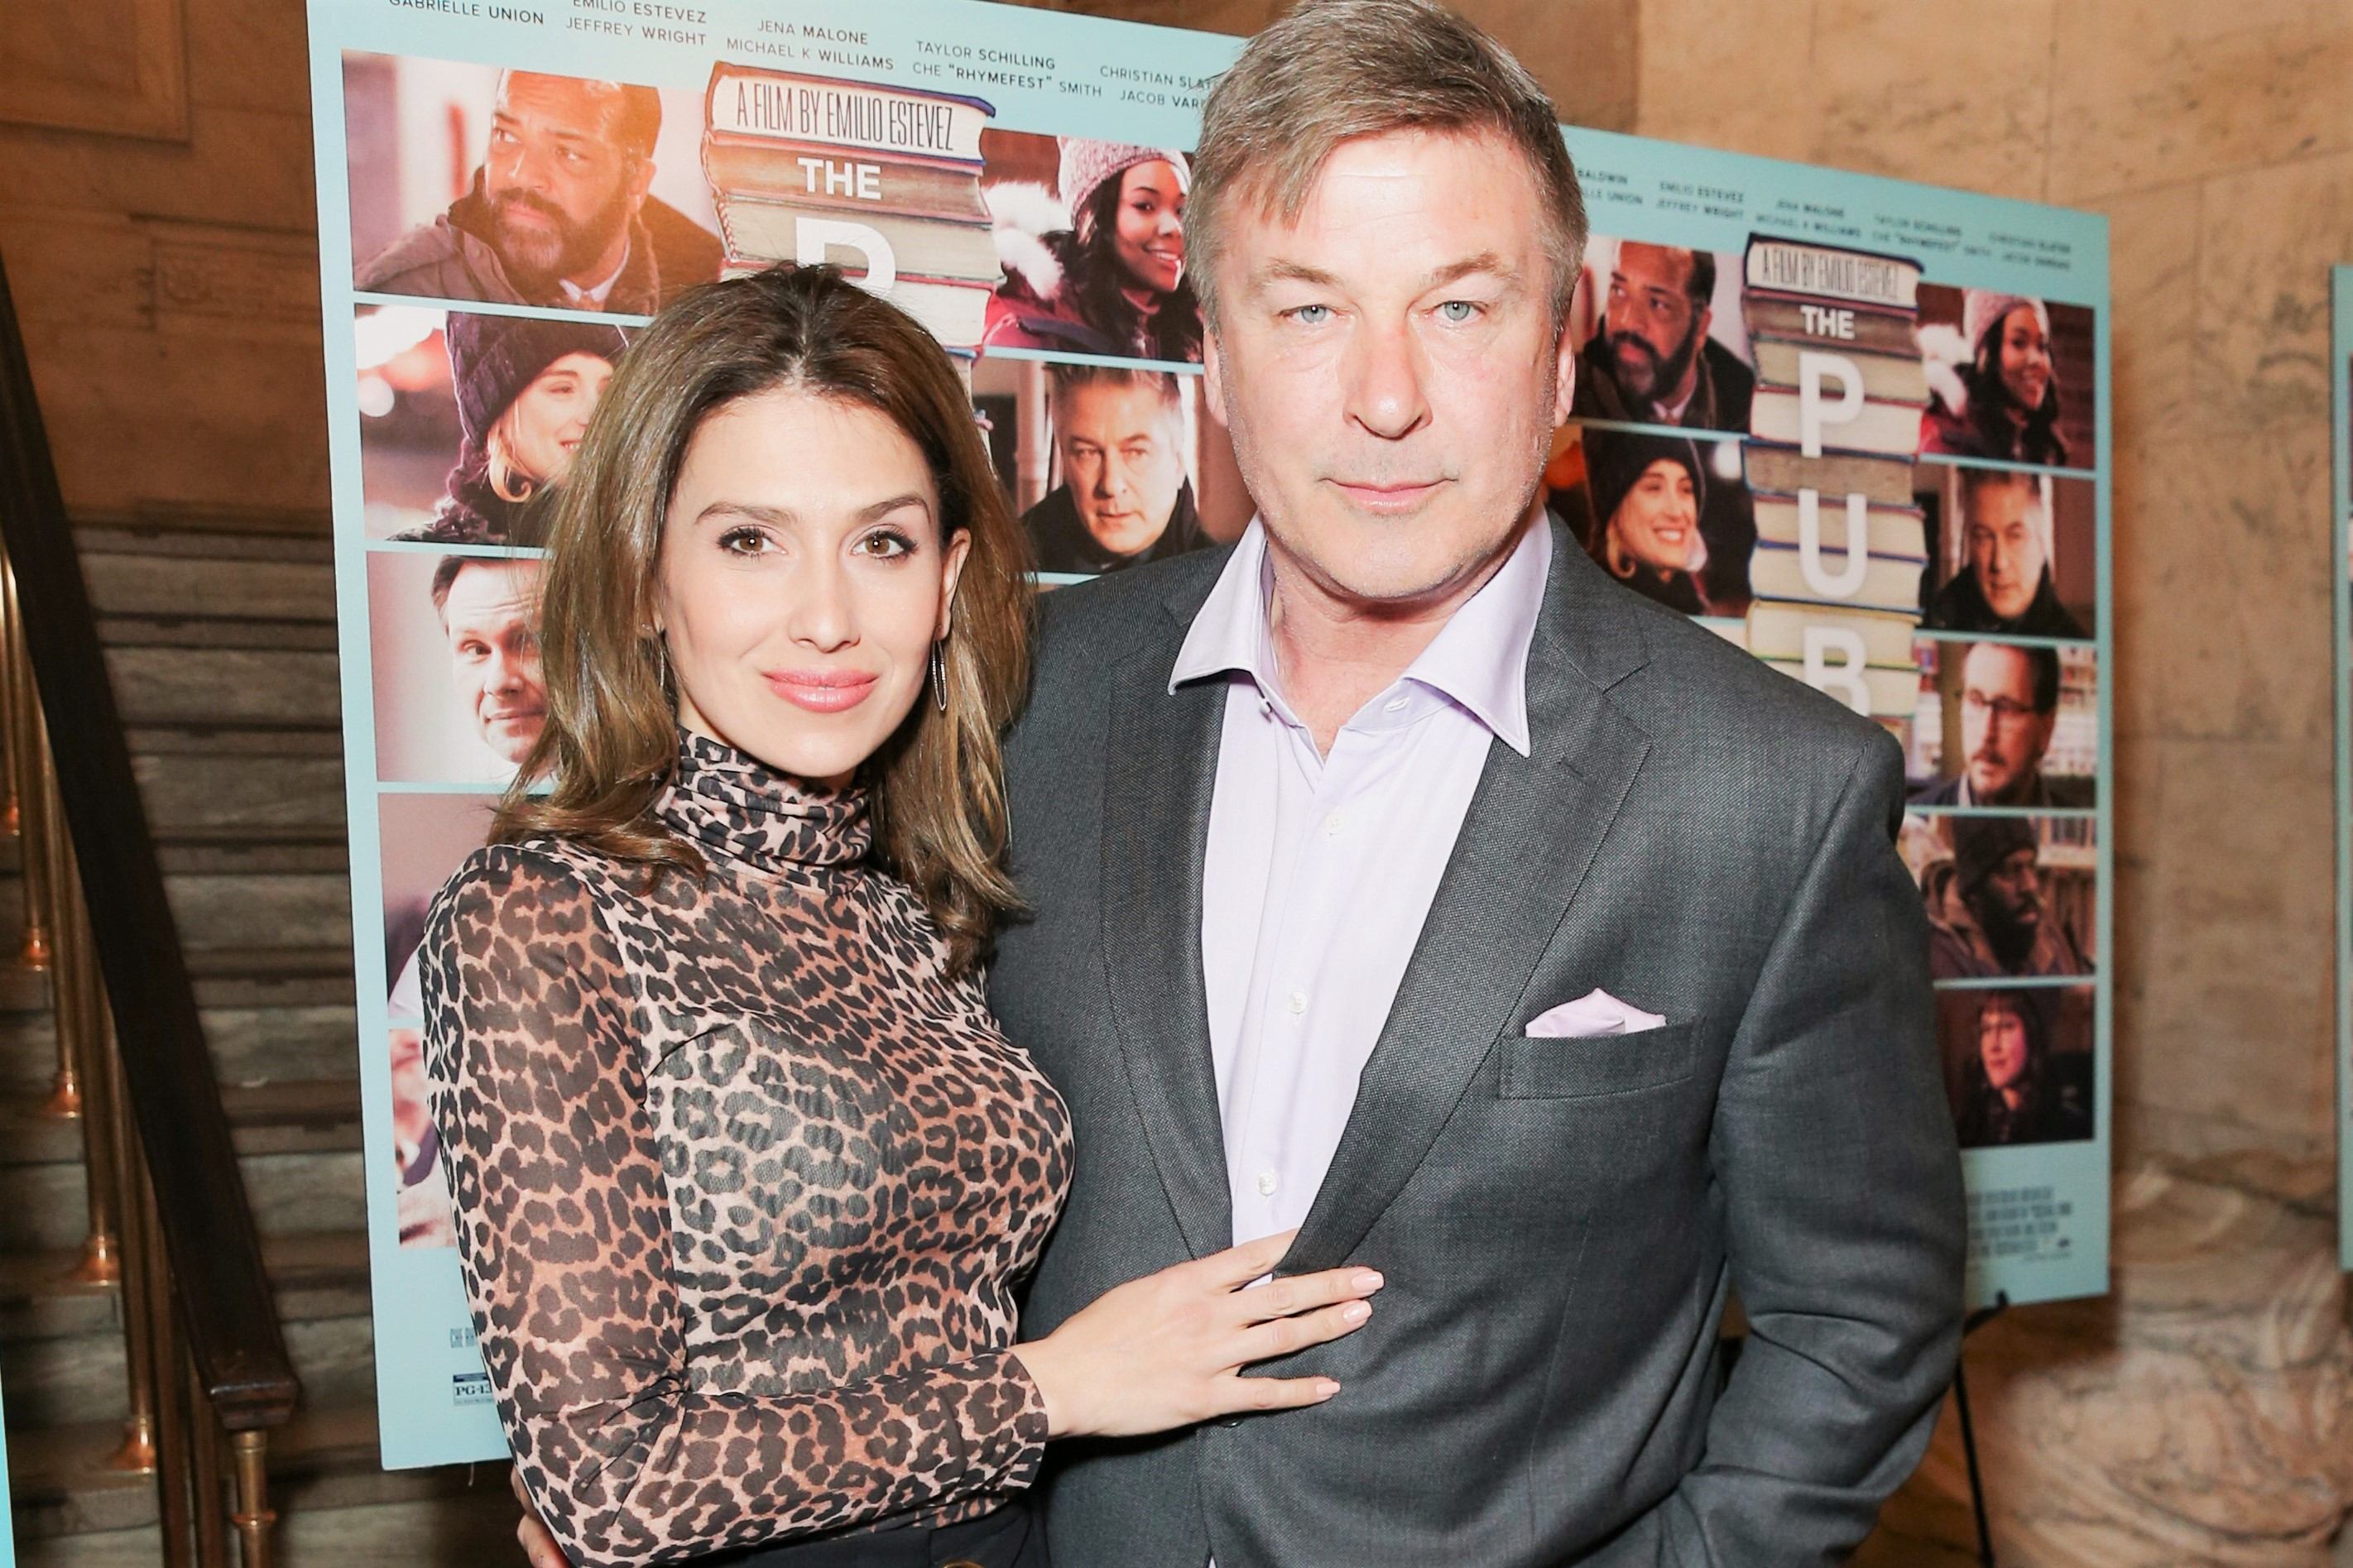 Hilaria Baldwin Reveals She Is Pregnant But Is 'Most Likely Experiencing a Miscarriage'